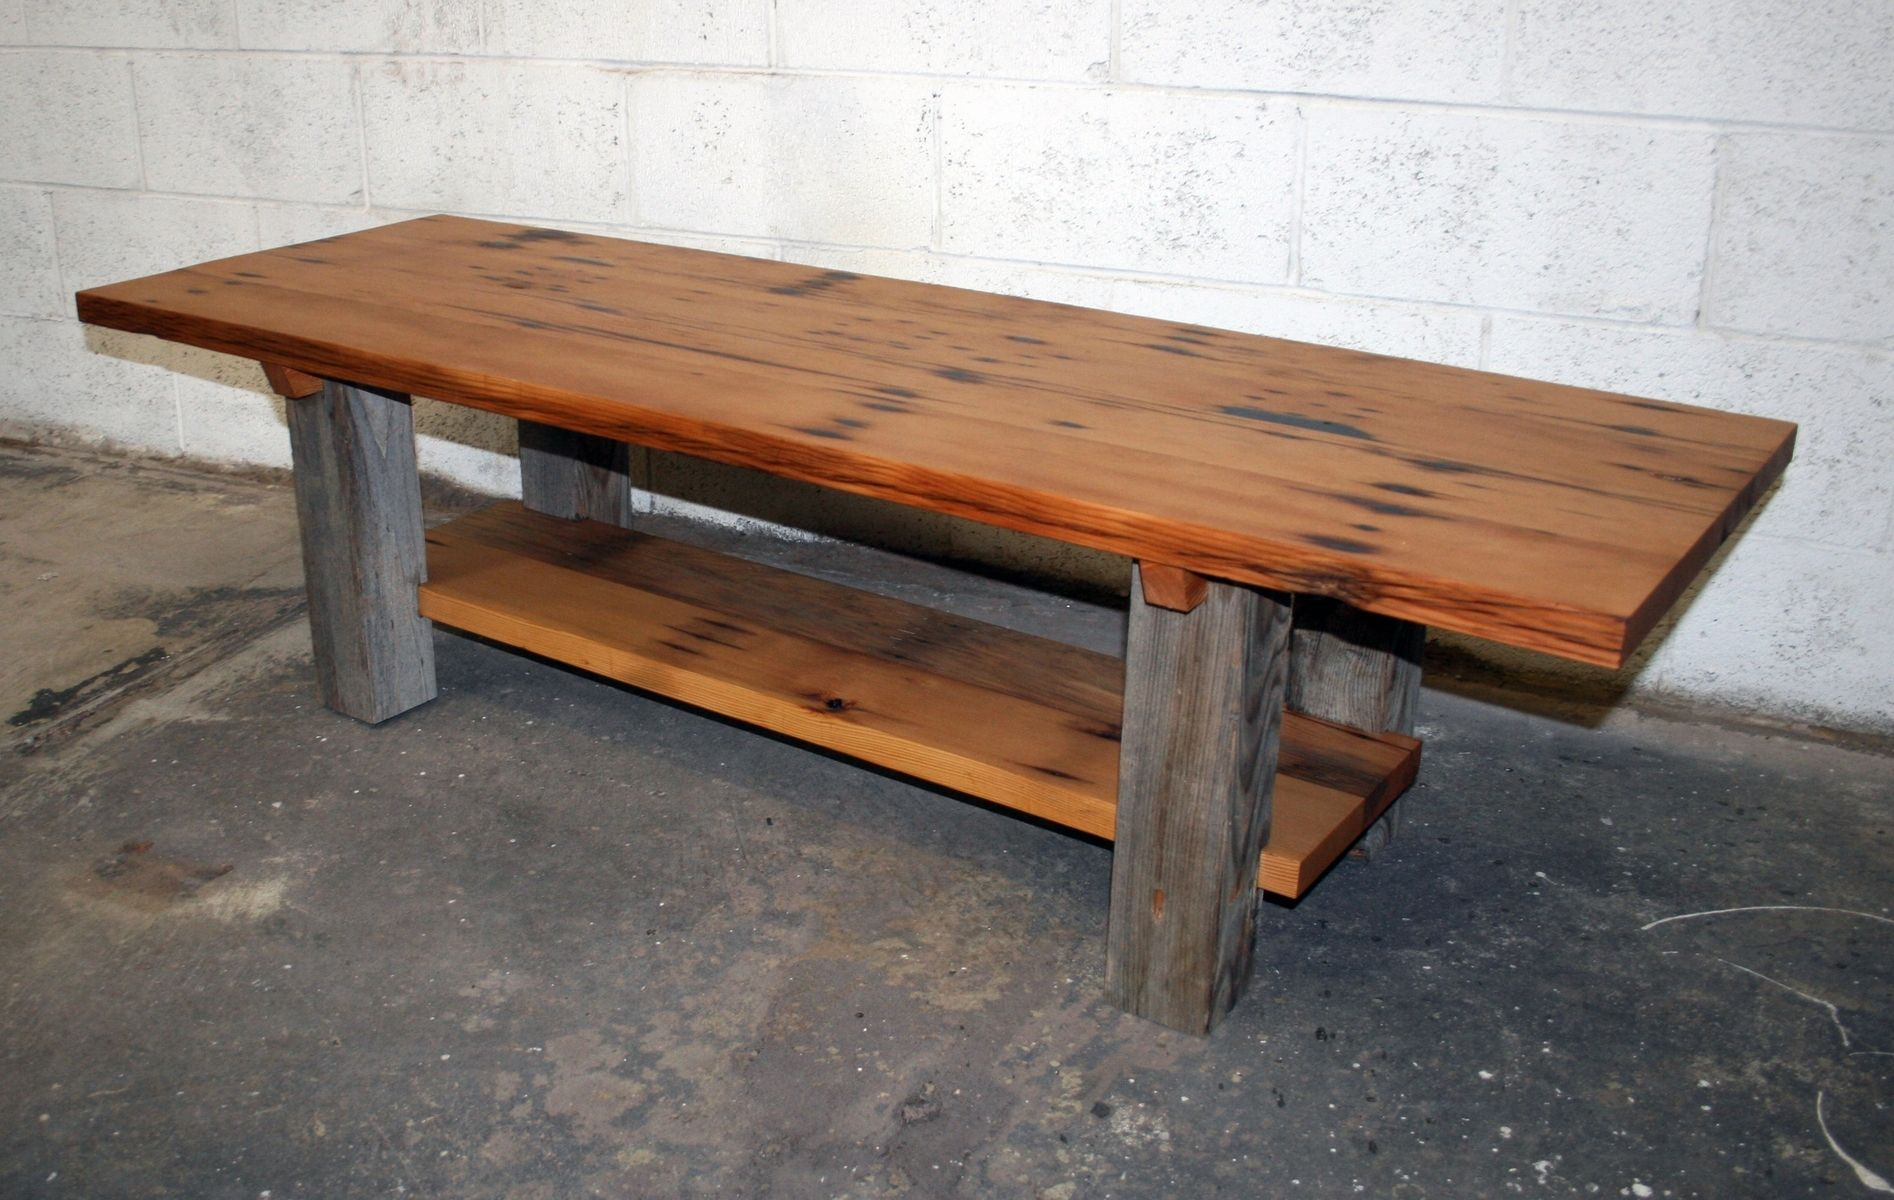 Hand made reclaimed fir and barn wood coffee table by hand made reclaimed fir and barn wood coffee table by historicwoods by lunarcanyon custommade geotapseo Image collections